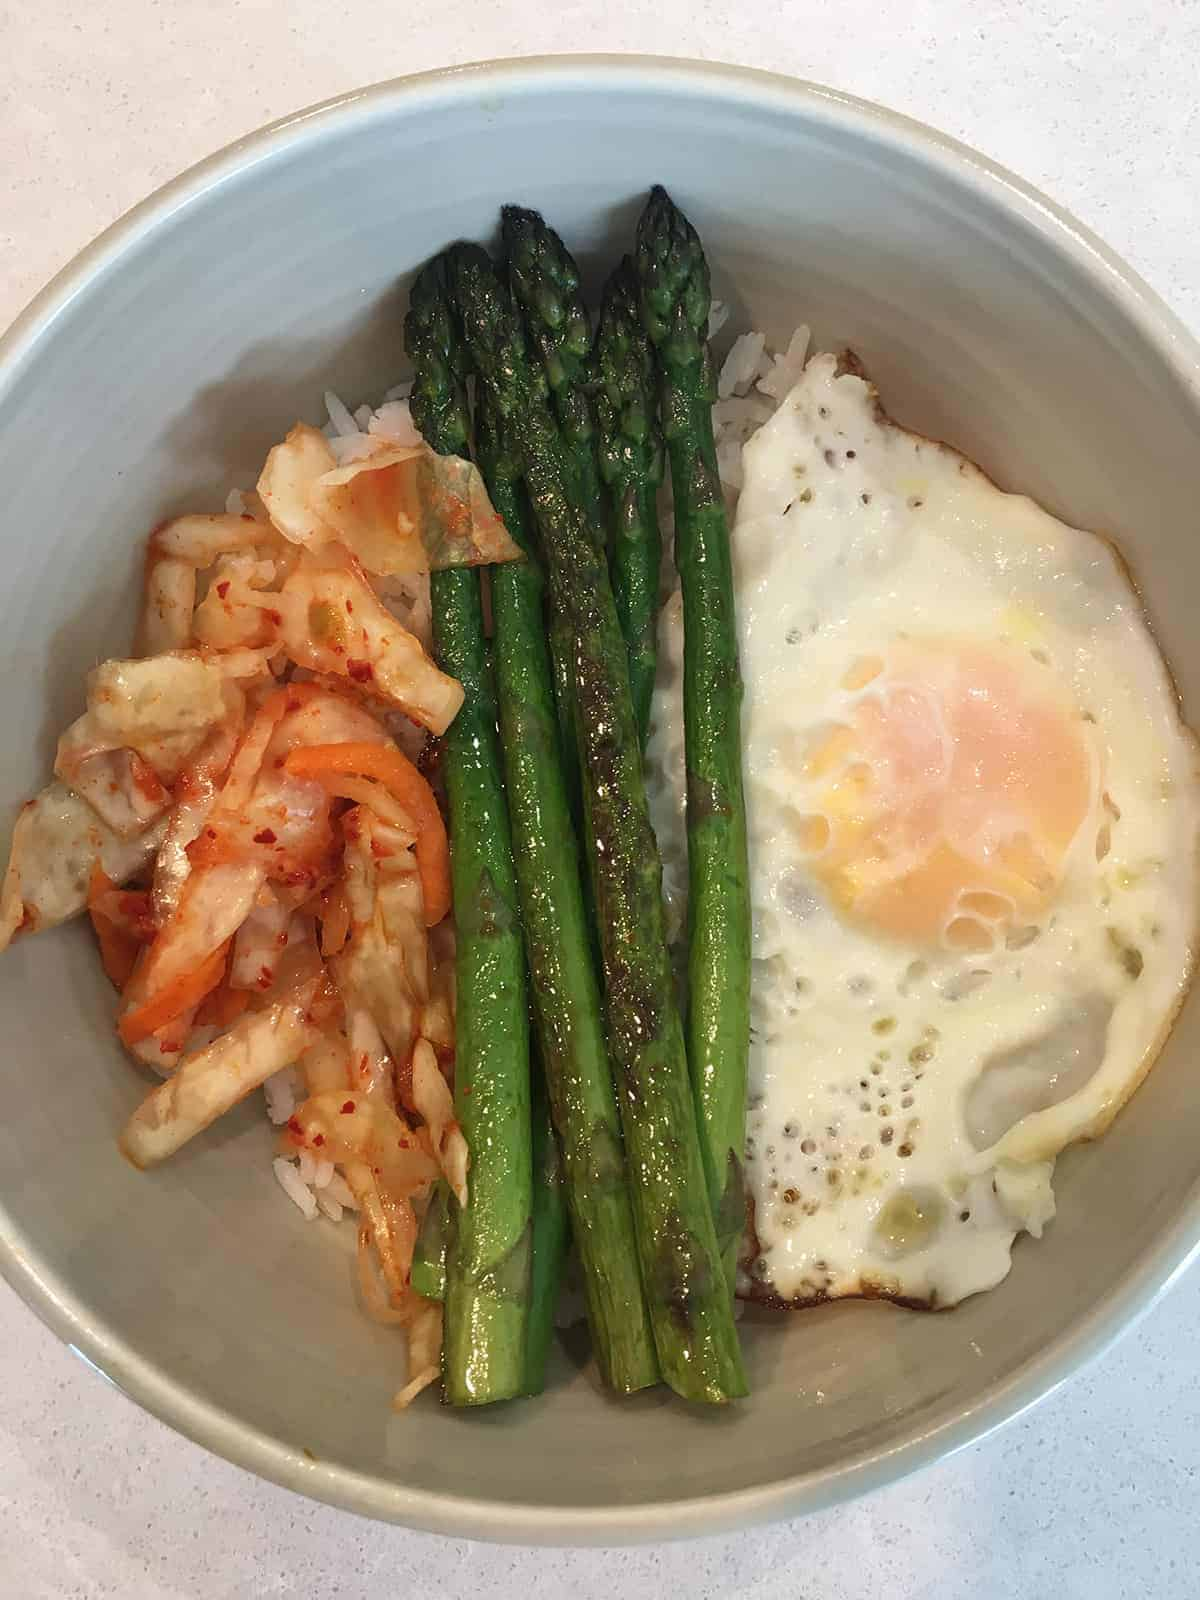 Kimchi, fried egg and asparagus spears over white rice in an off-white bowl atop a light grey marble countertop